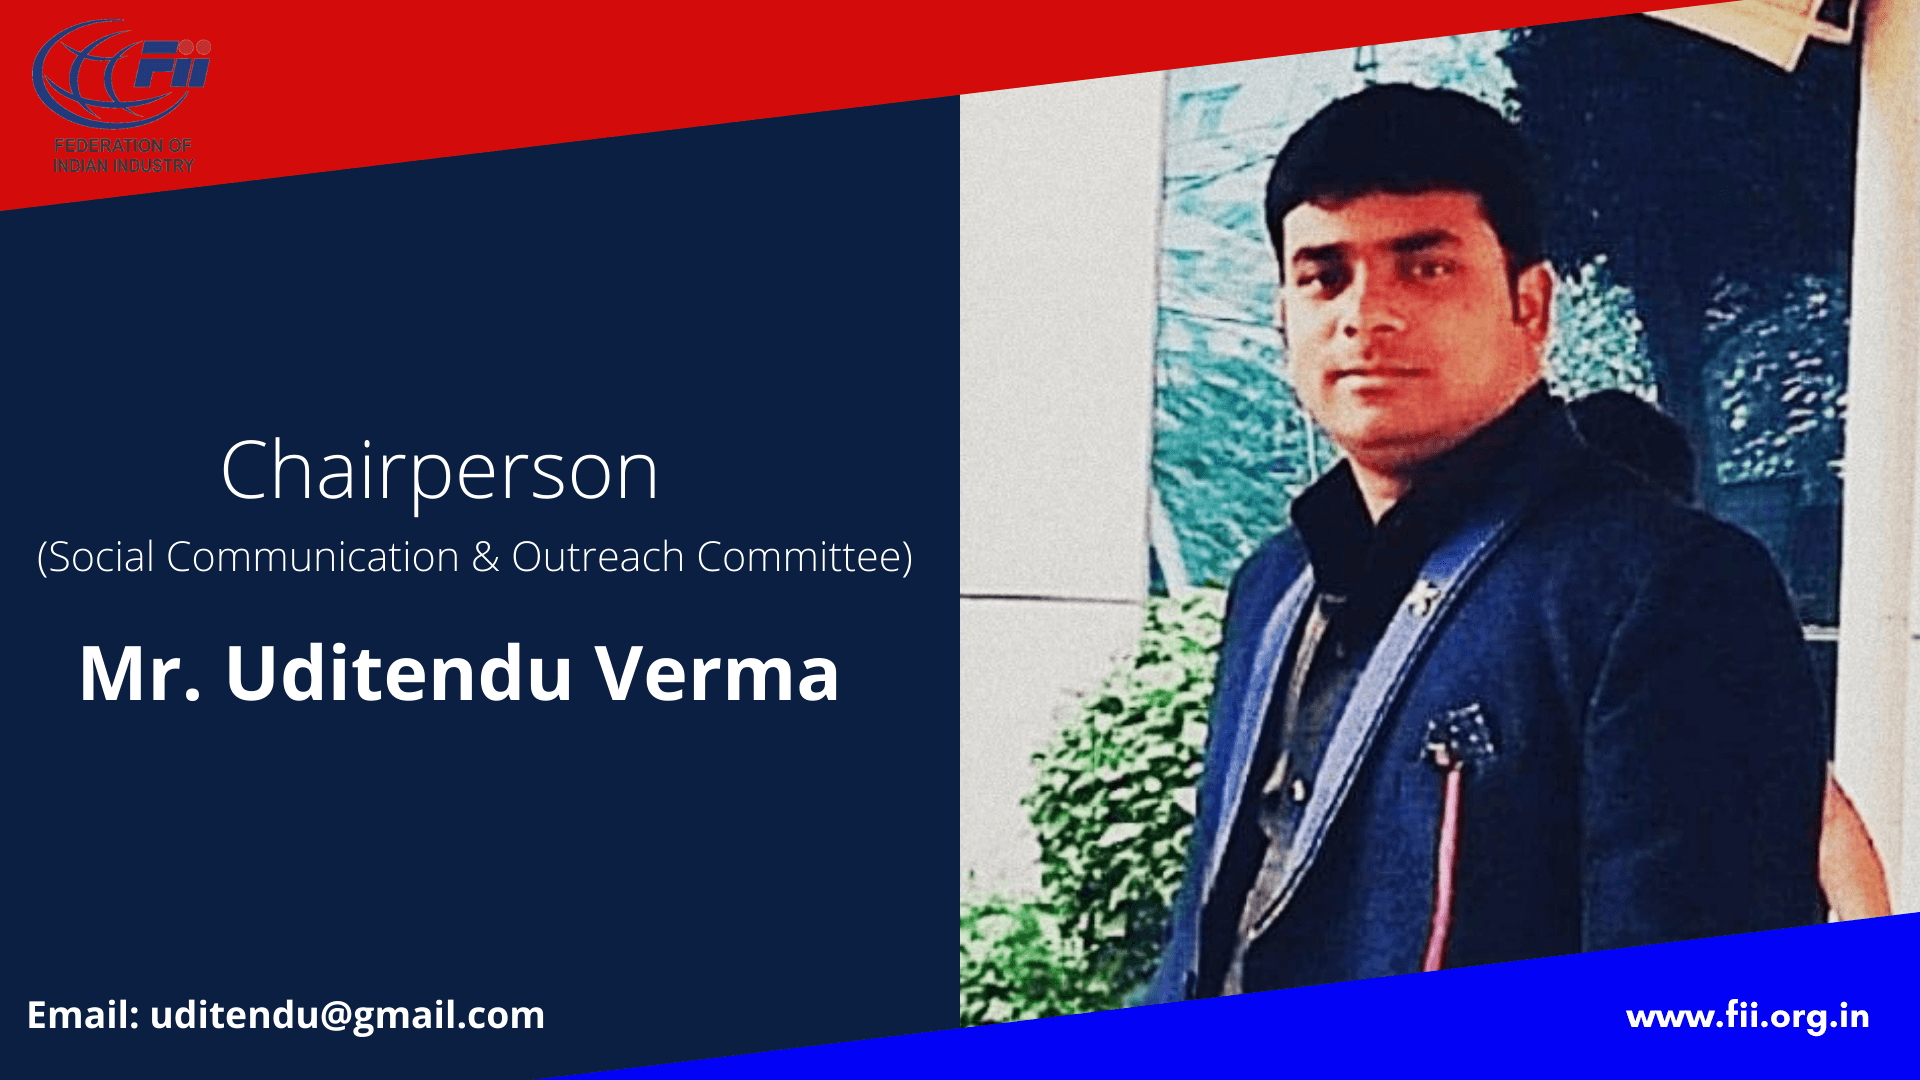 Mr. Uditendu Verma, Chairperson, Social Outreach Committee